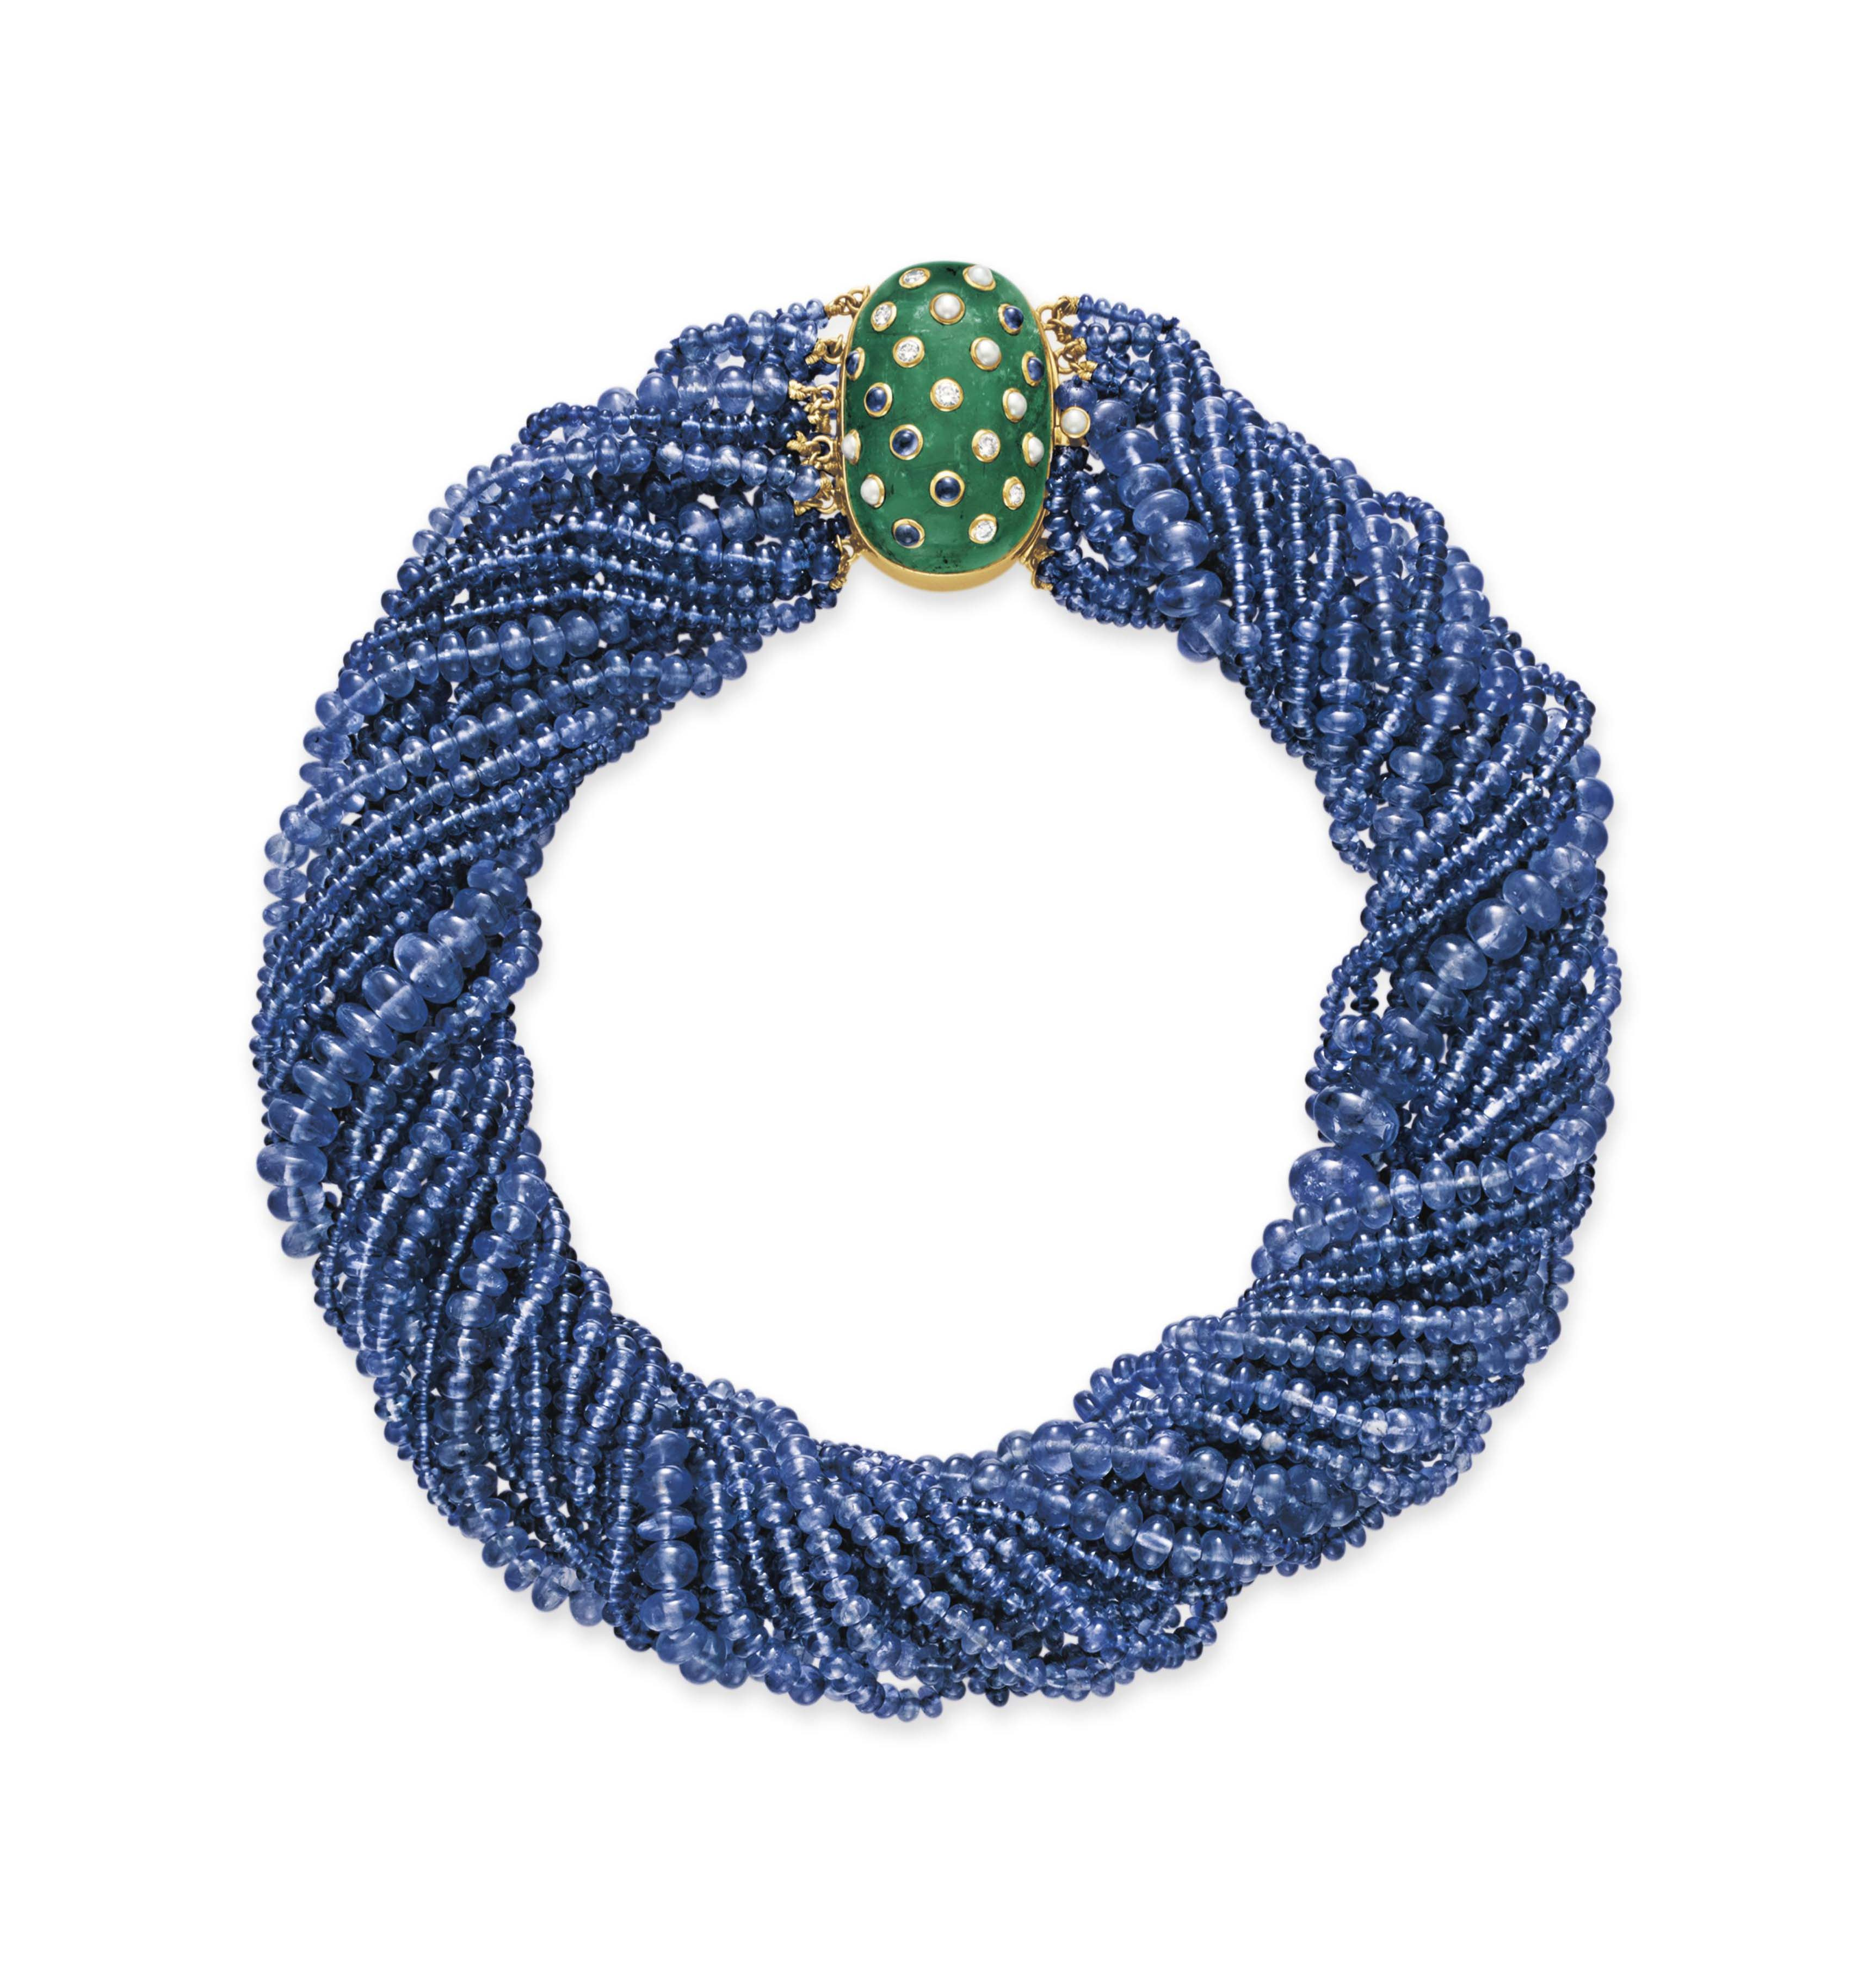 A SAPPHIRE BEAD AND MULTI-GEM NECKLACE, BY FRED LEIGHTON